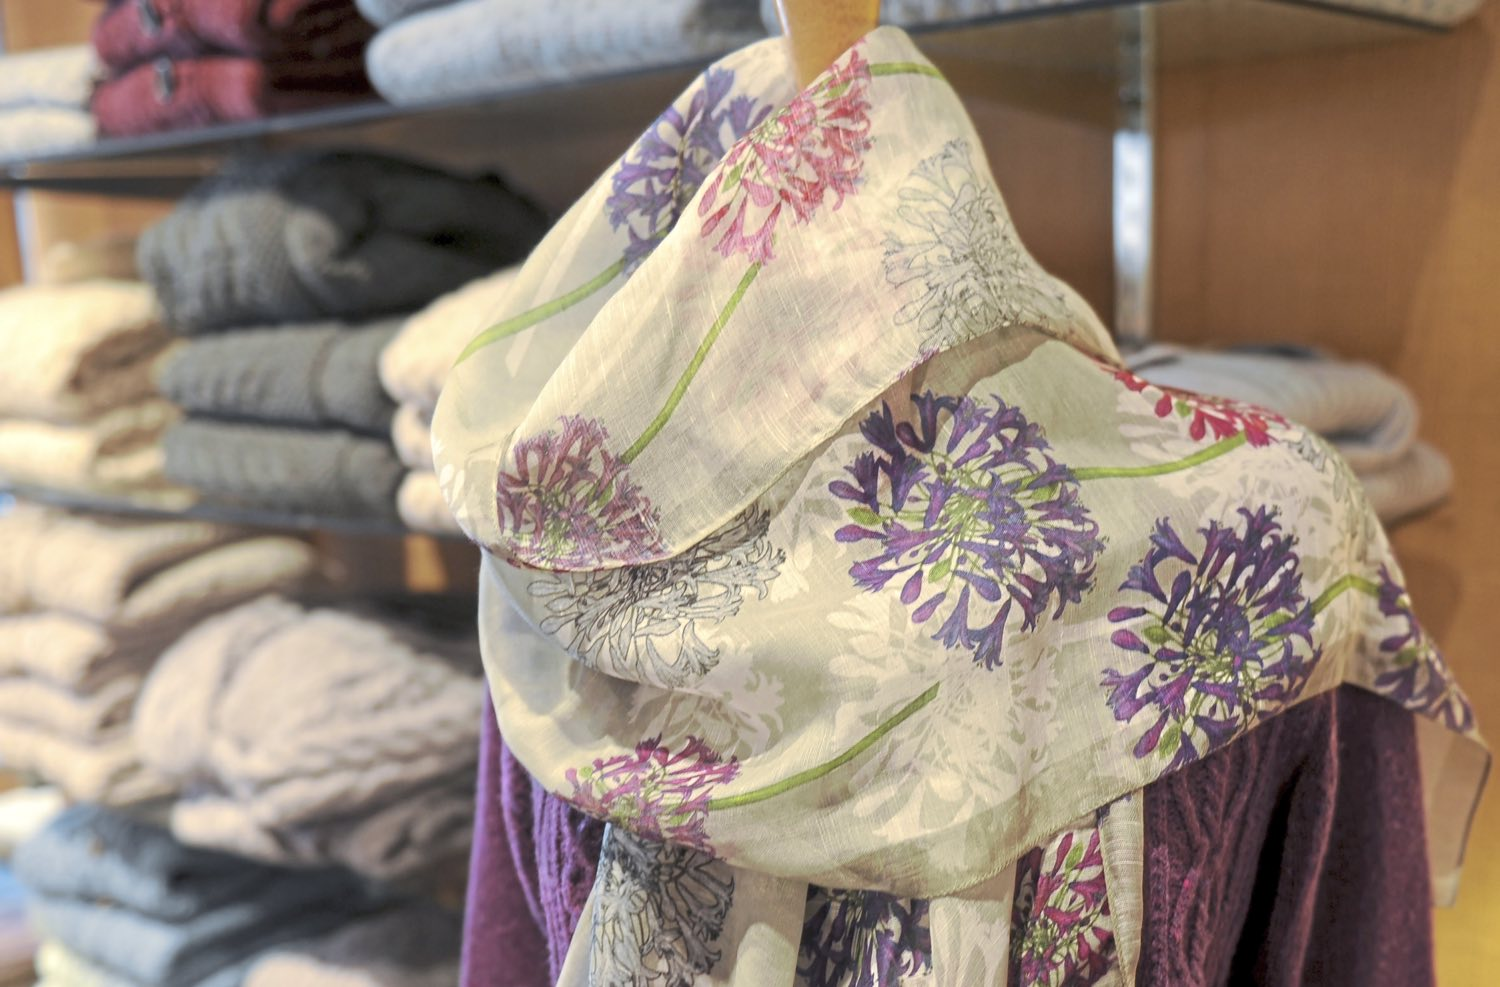 Spring scarves designed by Belinda Northcote Designs at the Irish Design Center on South Craig Street in Oakland. (Pam Panchak/Post-Gazette)